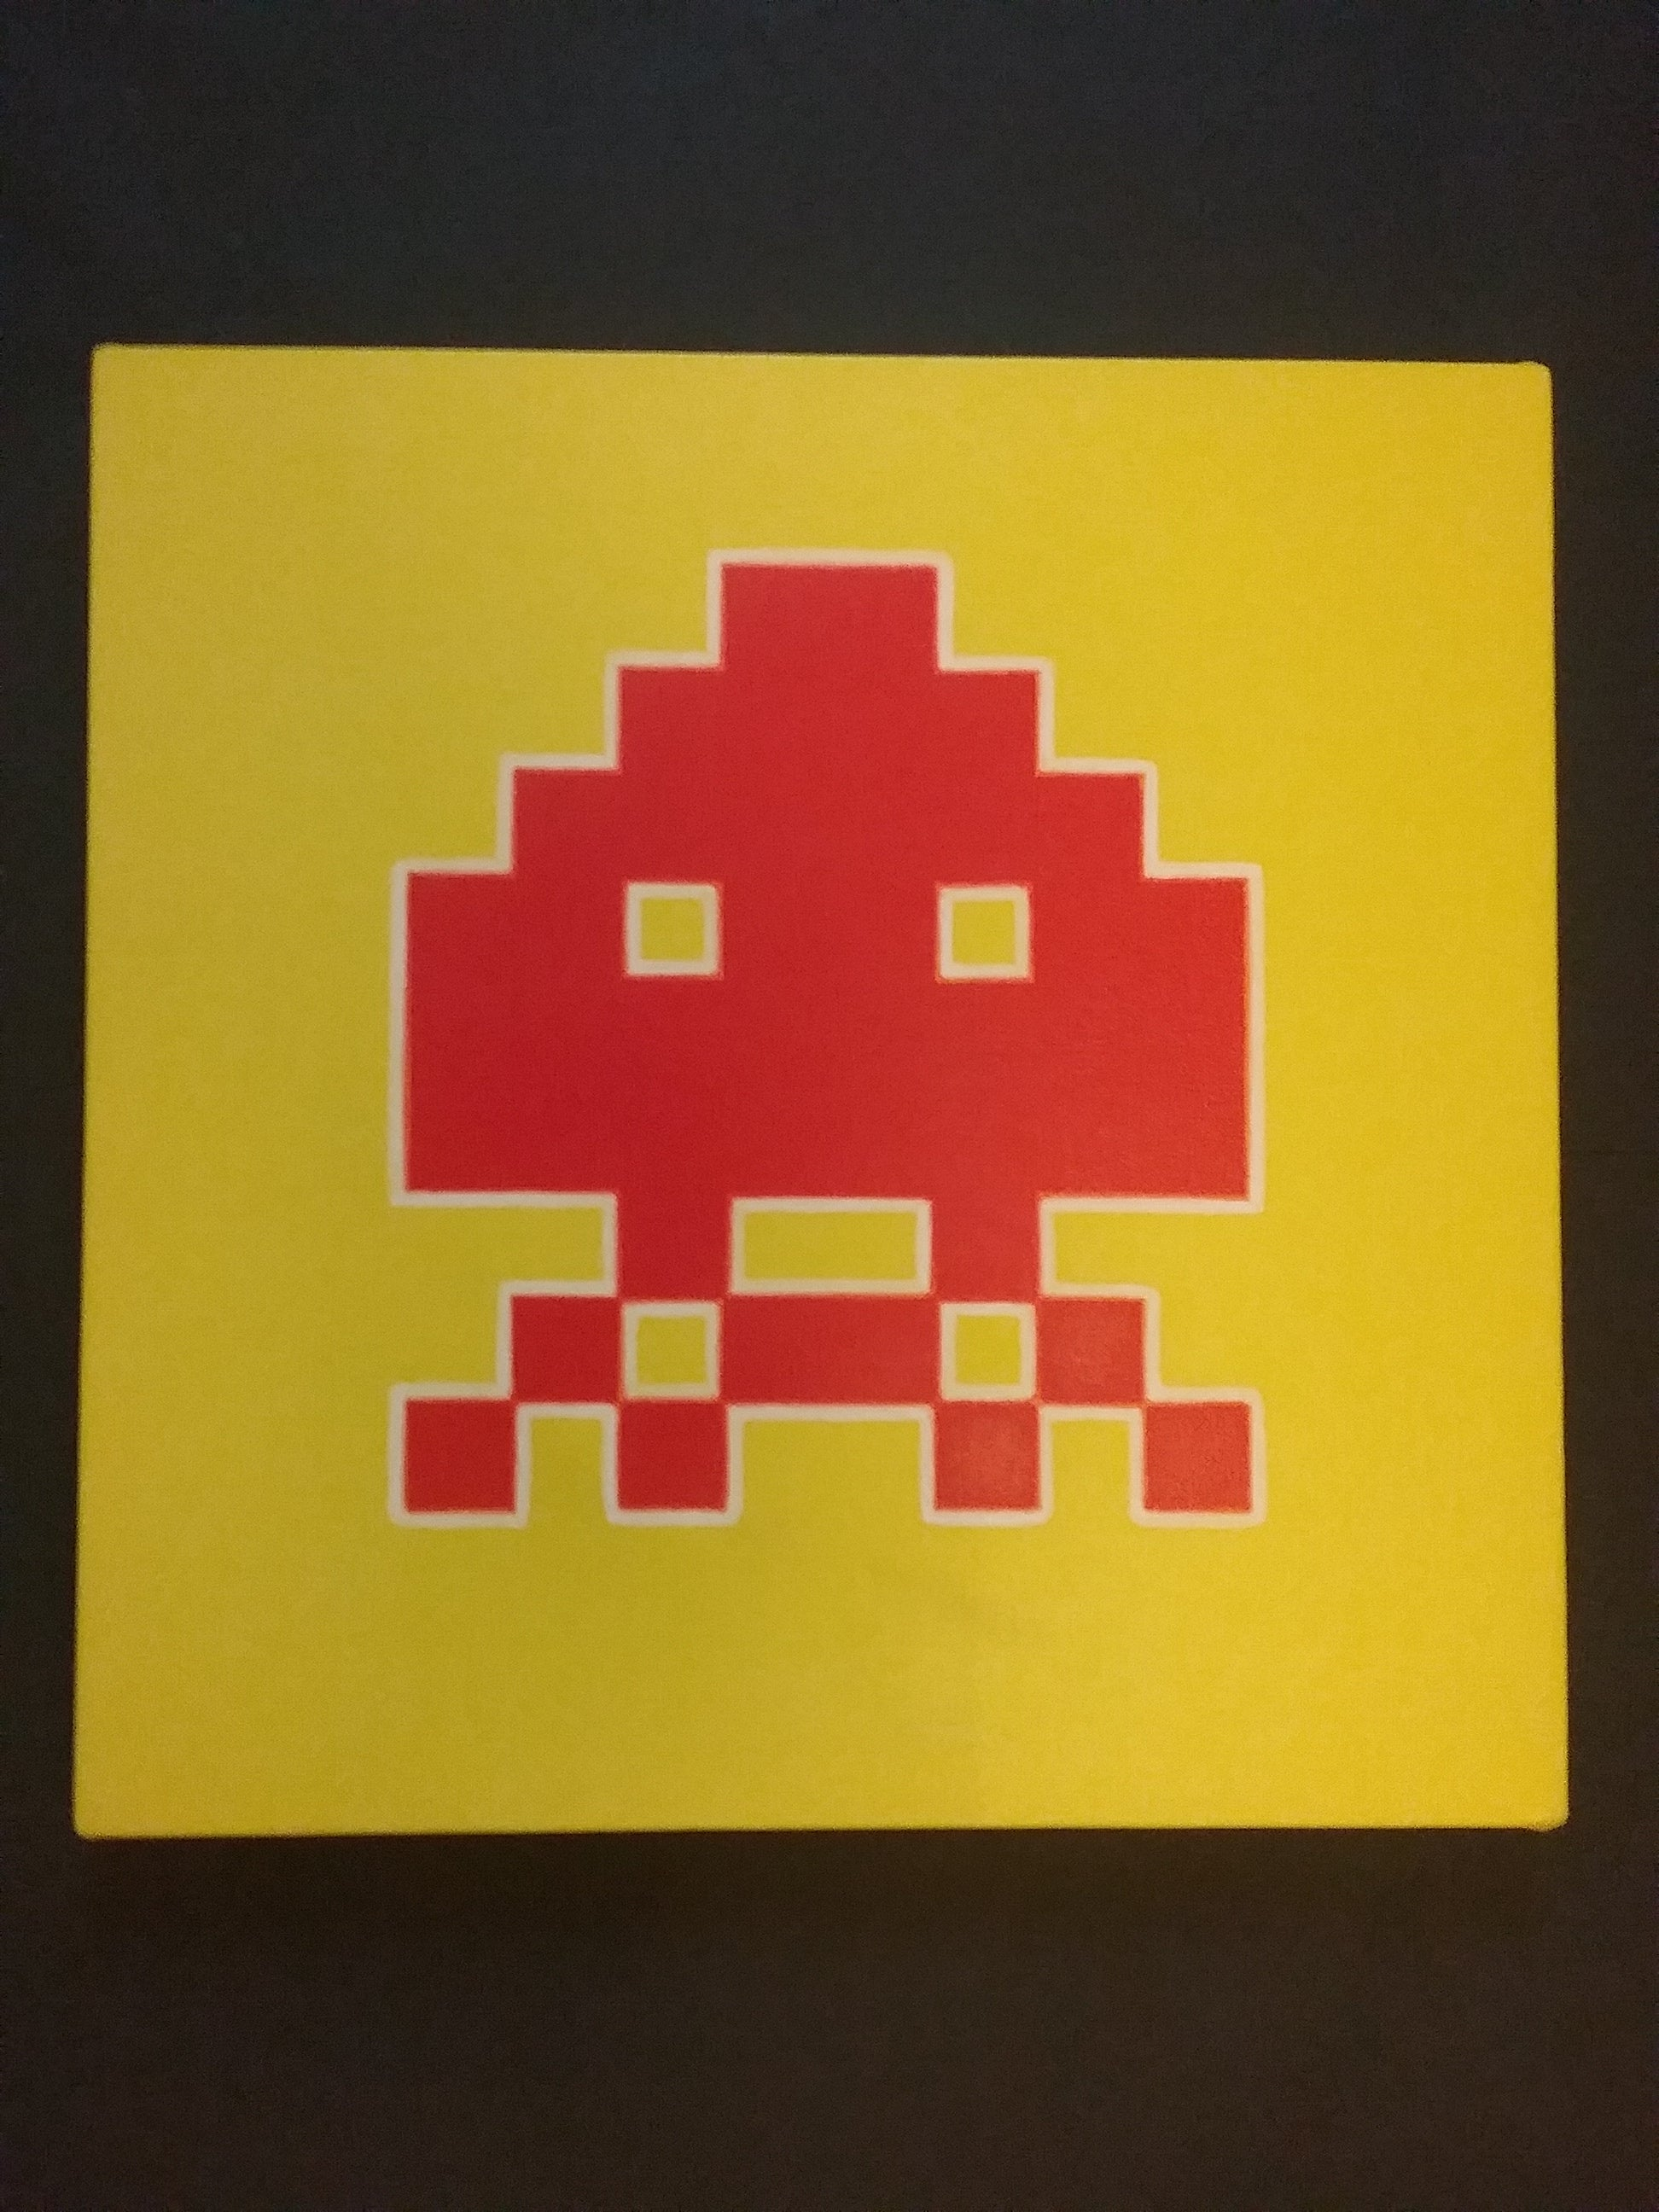 David McKeran - Space Invader, Painting For Sale at 1stdibs